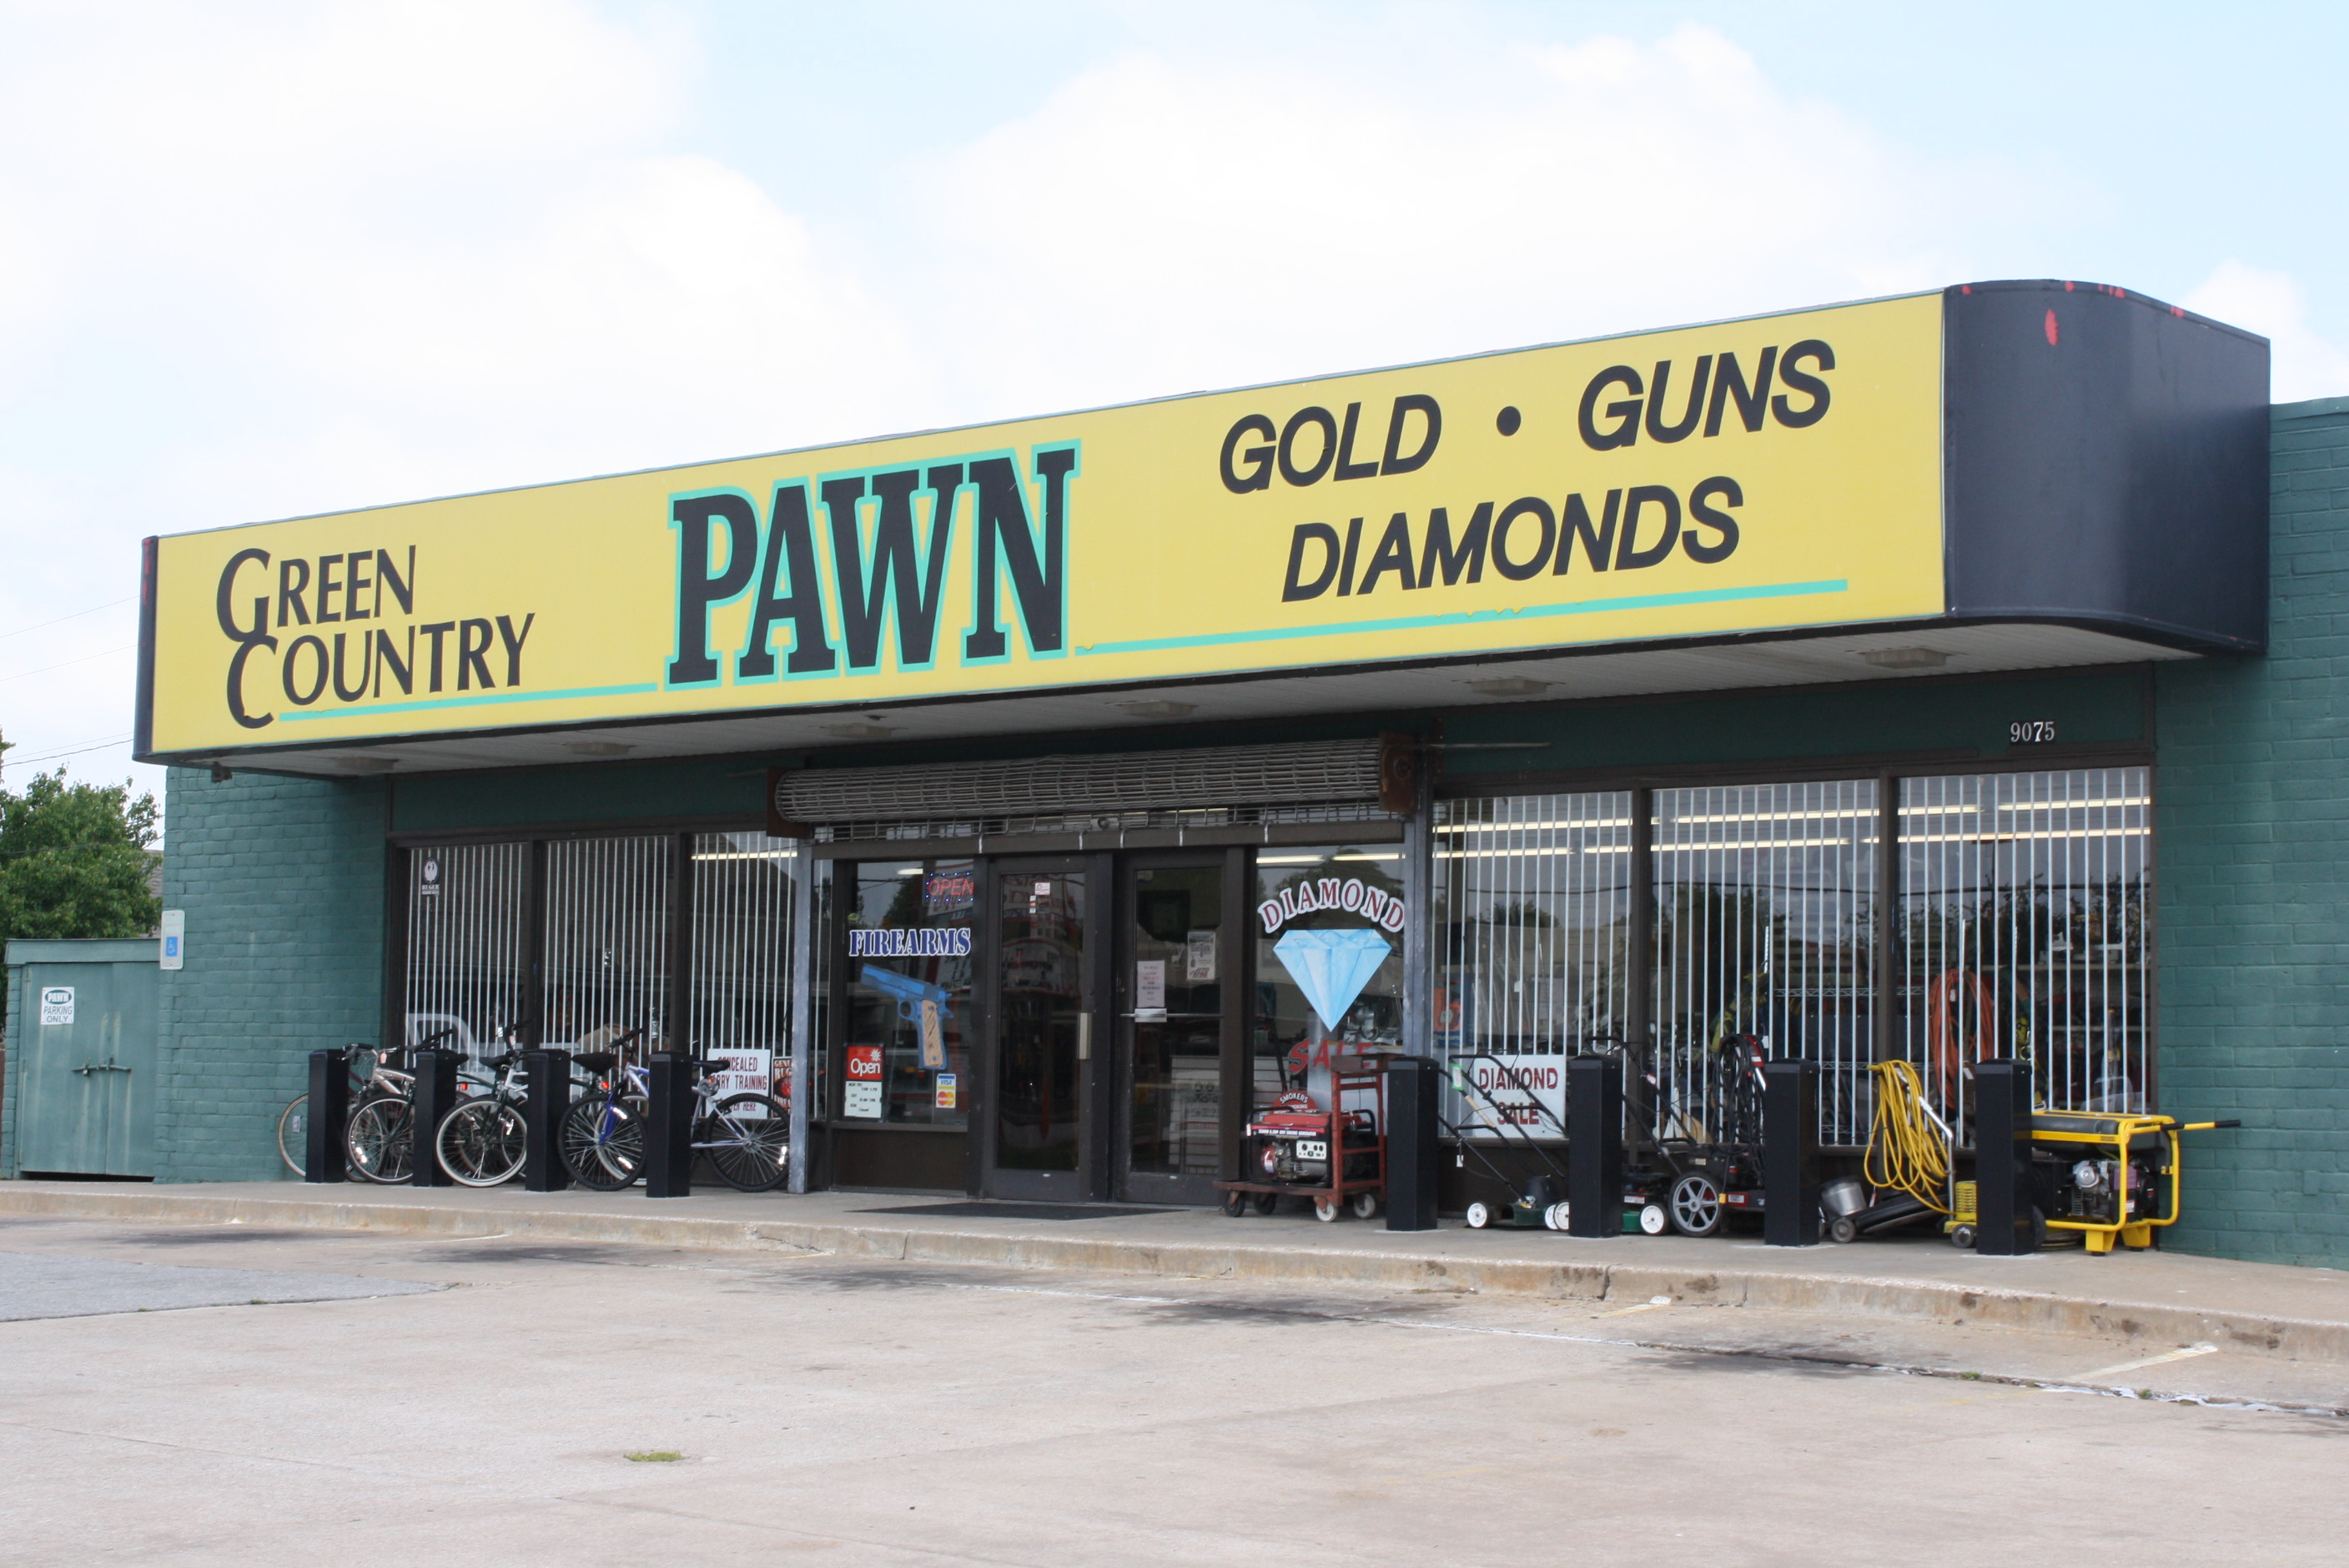 Green Counrty Arms & Pawn